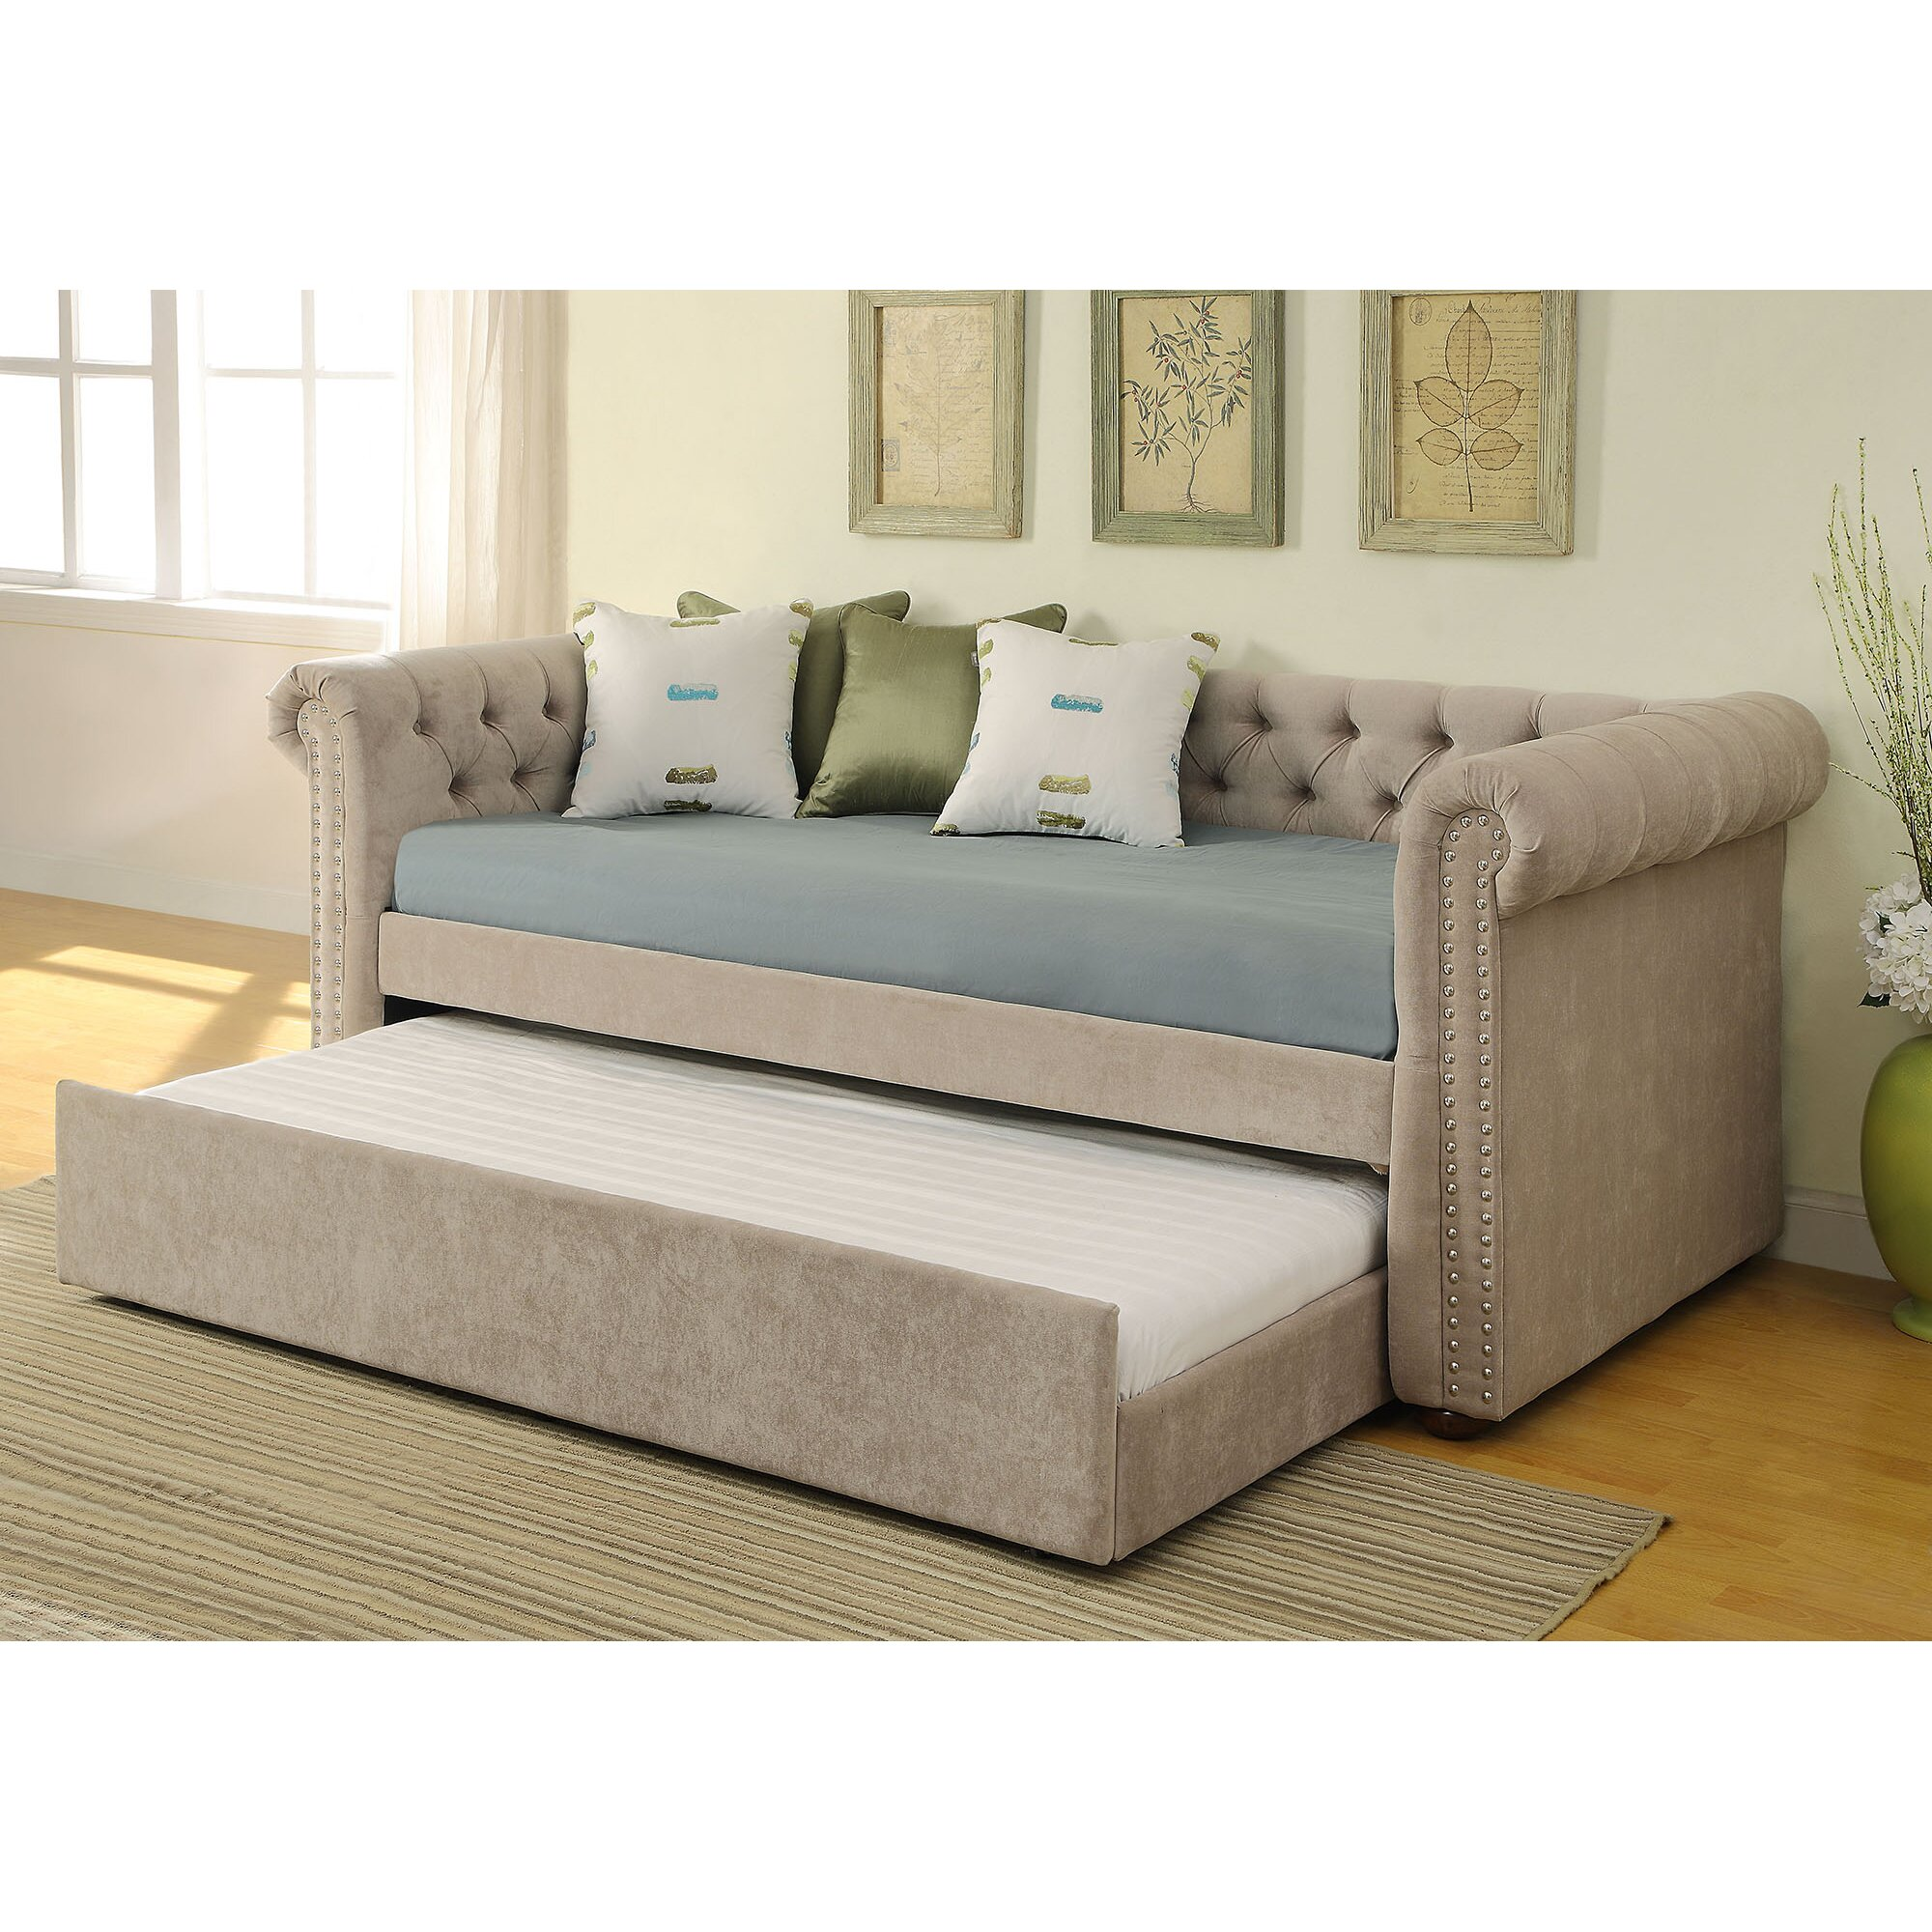 Nspire Daybed With Trundle Reviews Wayfair